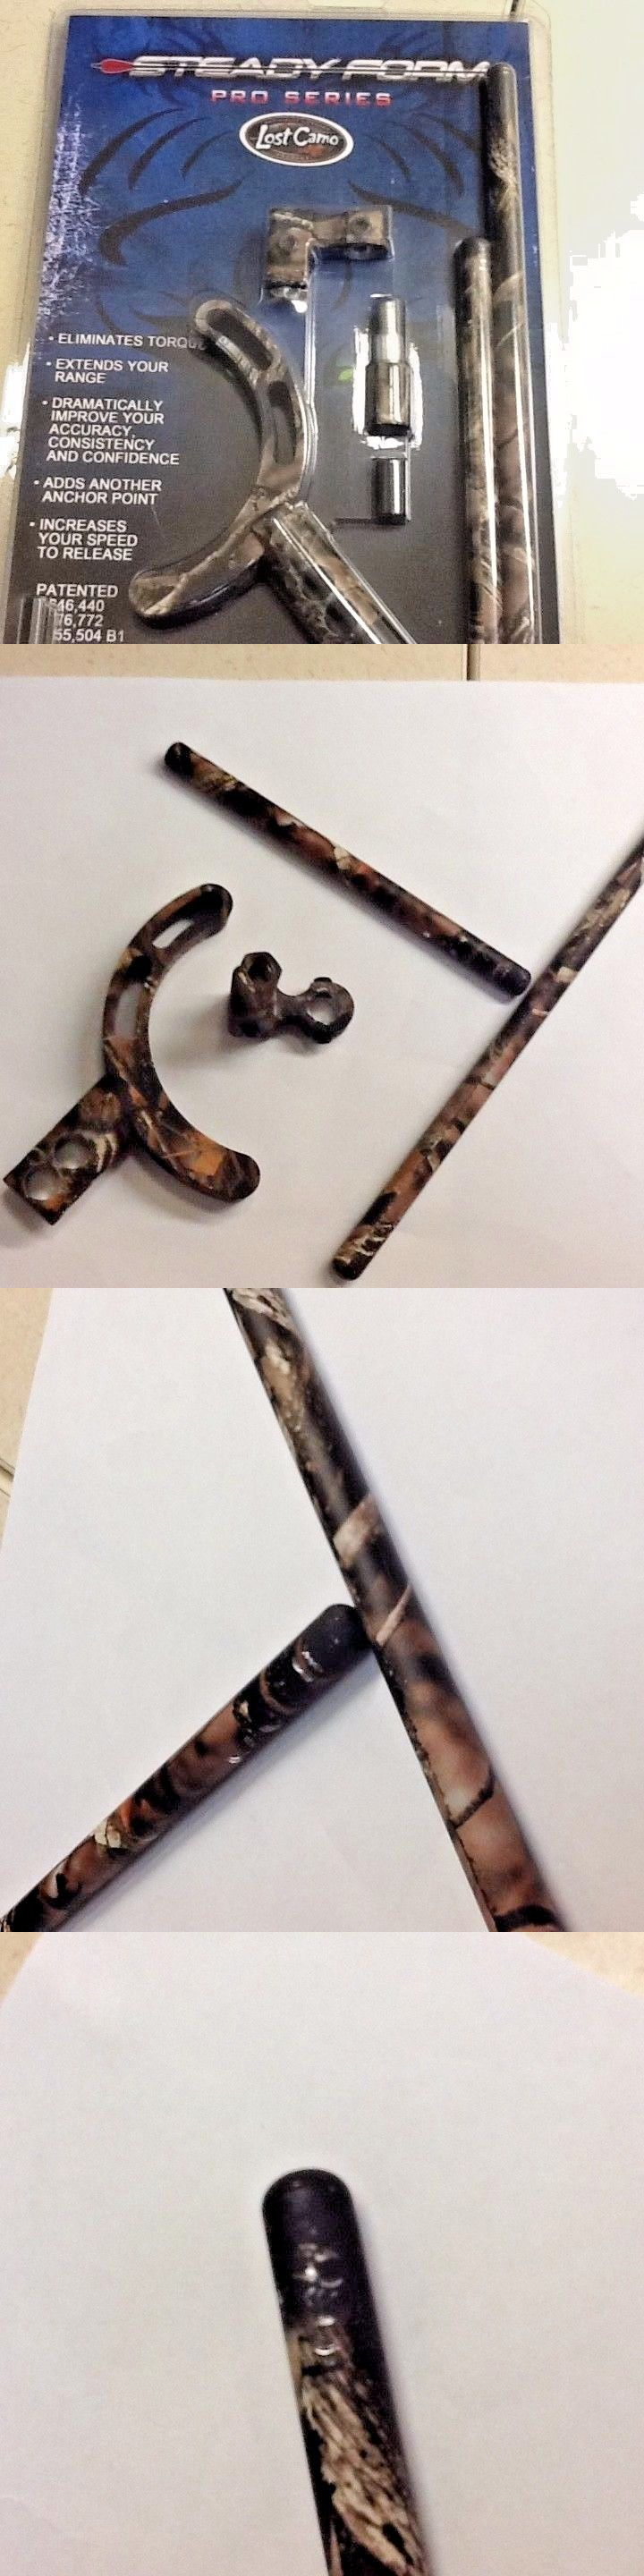 Other Archery Accessories 181306: Steady Form Pro Series Lost Camo ...